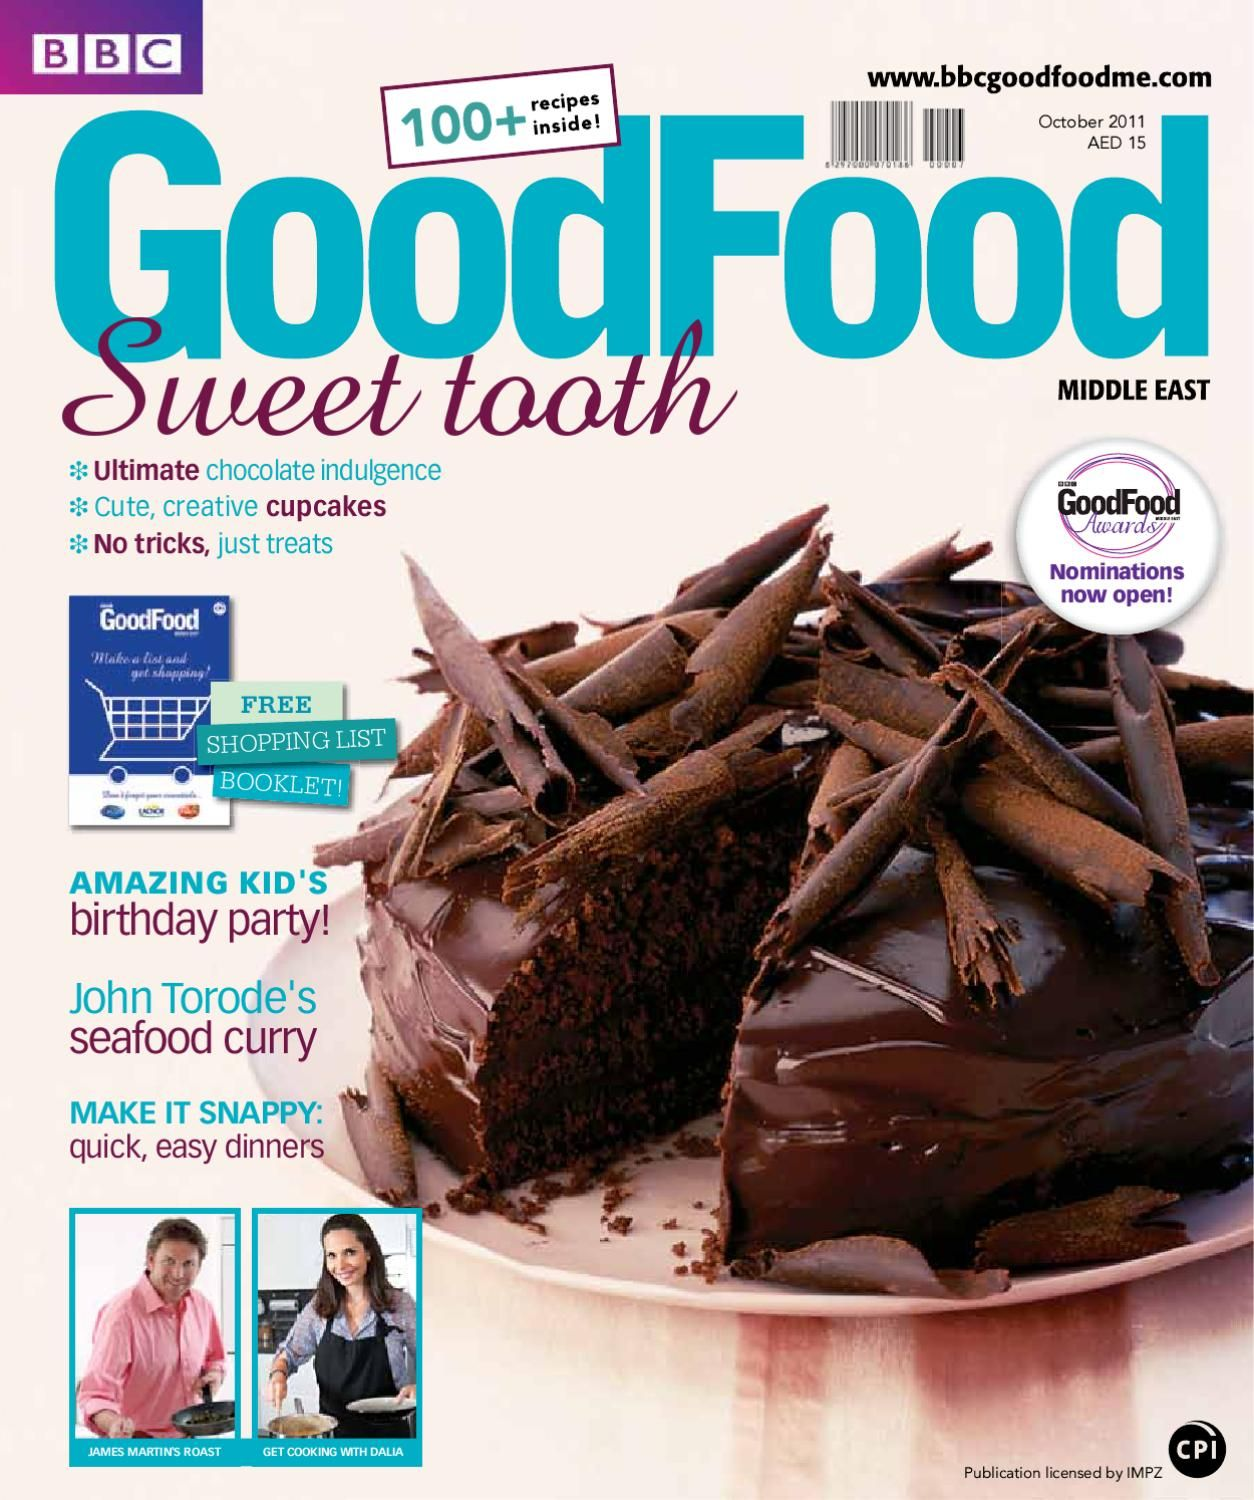 Bbc good food middle east magazine everyday dishes giveaway and the original good food magazine always has several tried and tested recipes and is a dependable guide the indian edition promises a section for forumfinder Choice Image